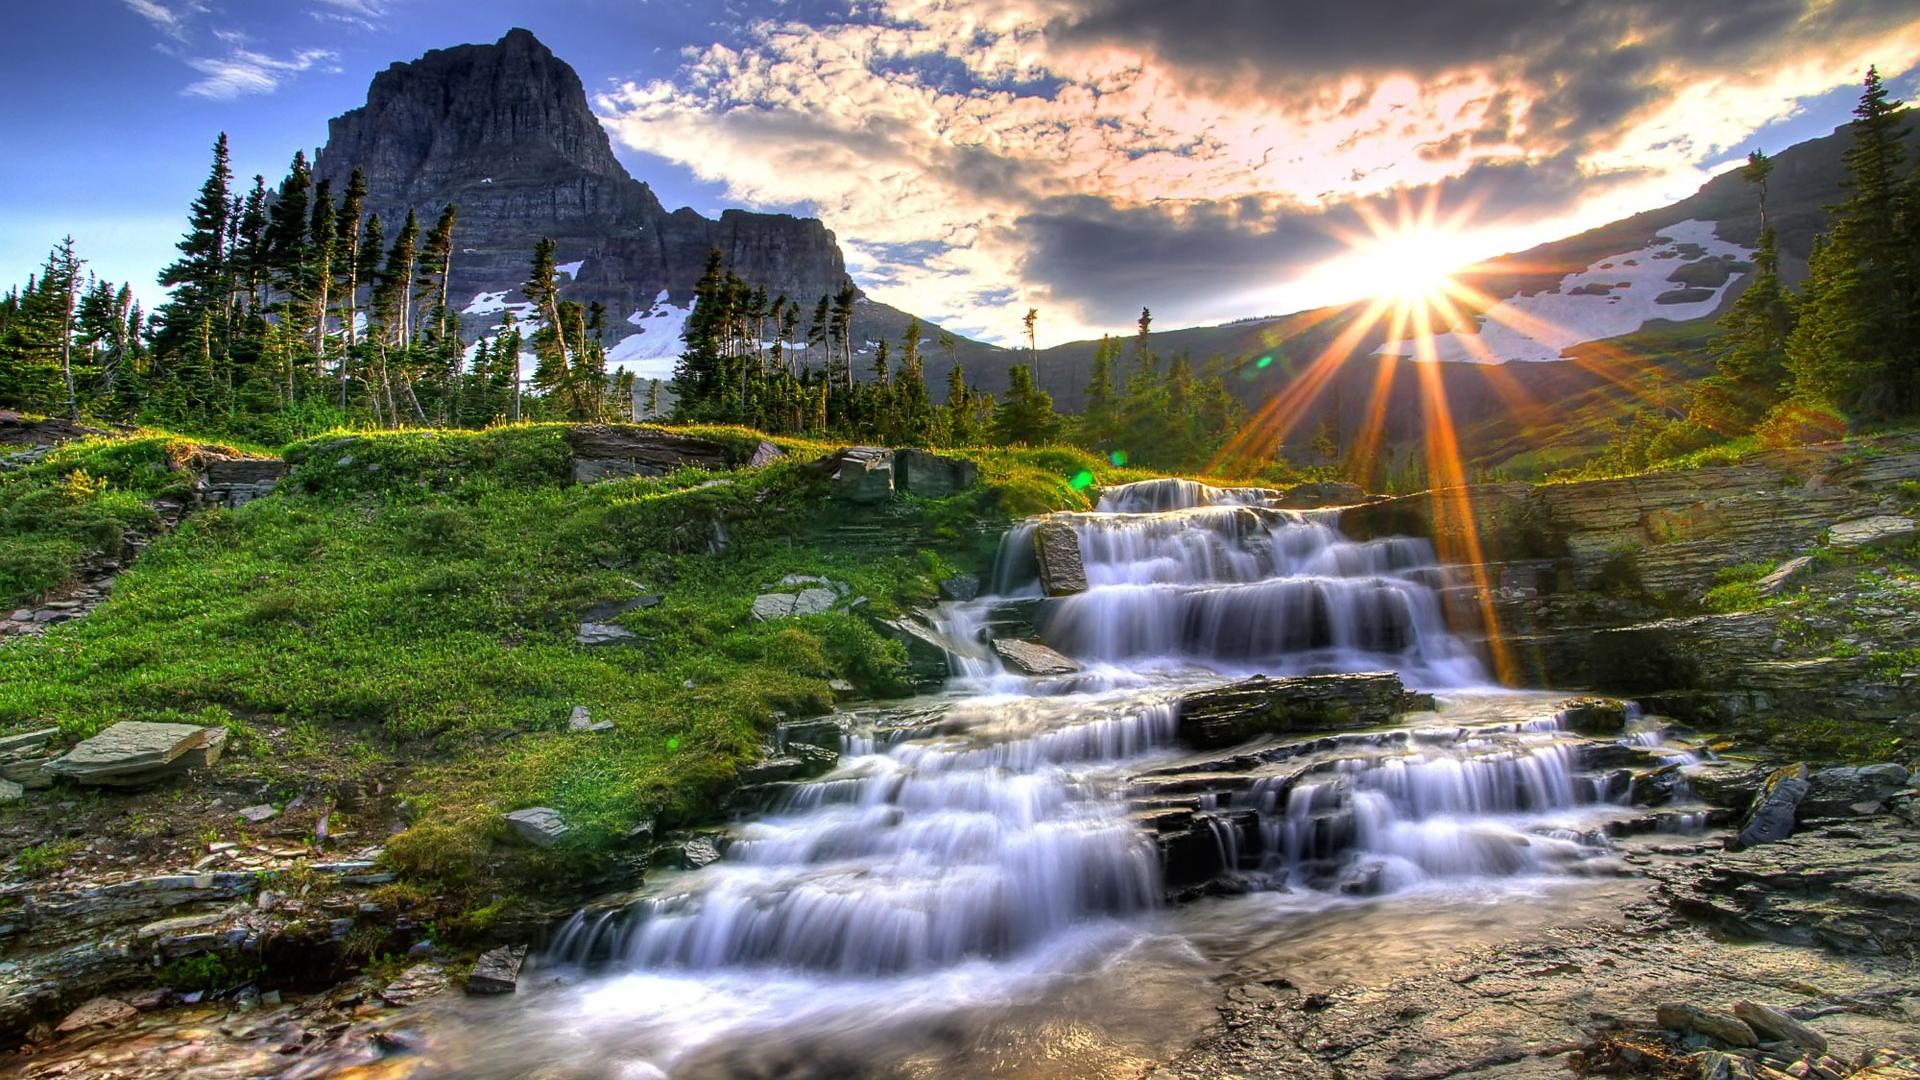 Nature Landscape Wallpapers - Top Free Nature Landscape